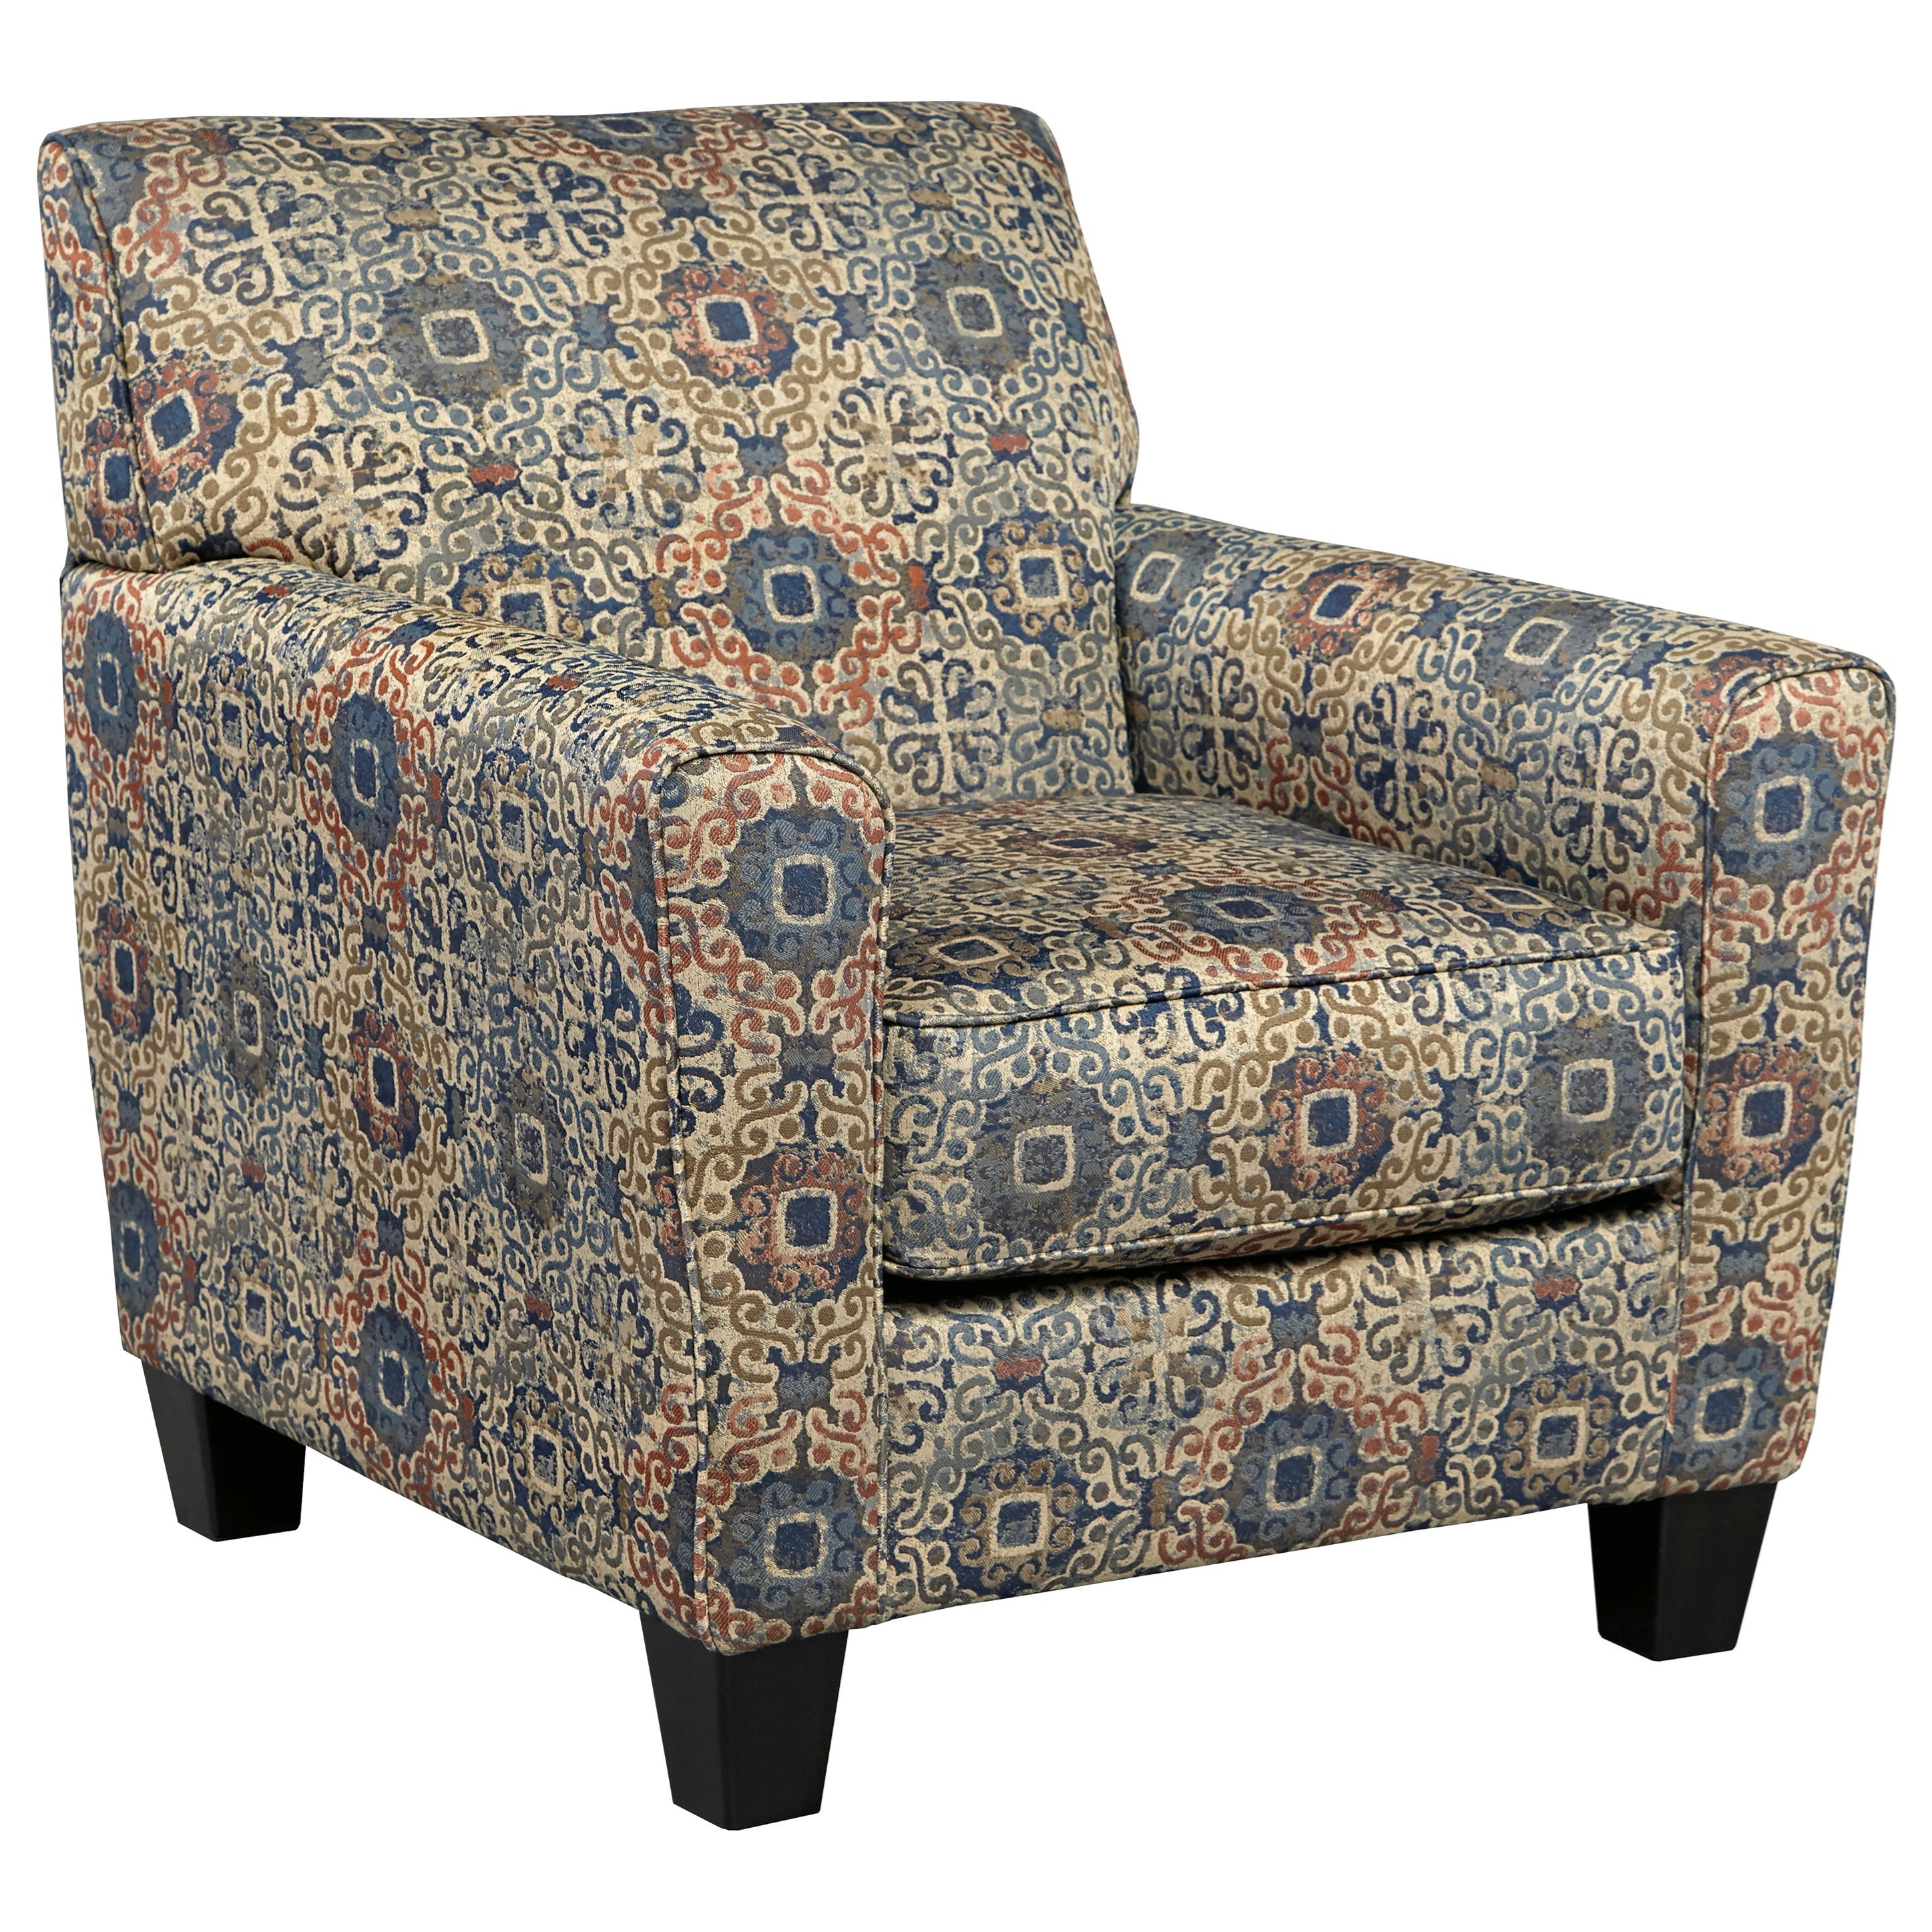 Belcampo Accent Chair by Ashley Furniture at Lapeer Furniture & Mattress Center